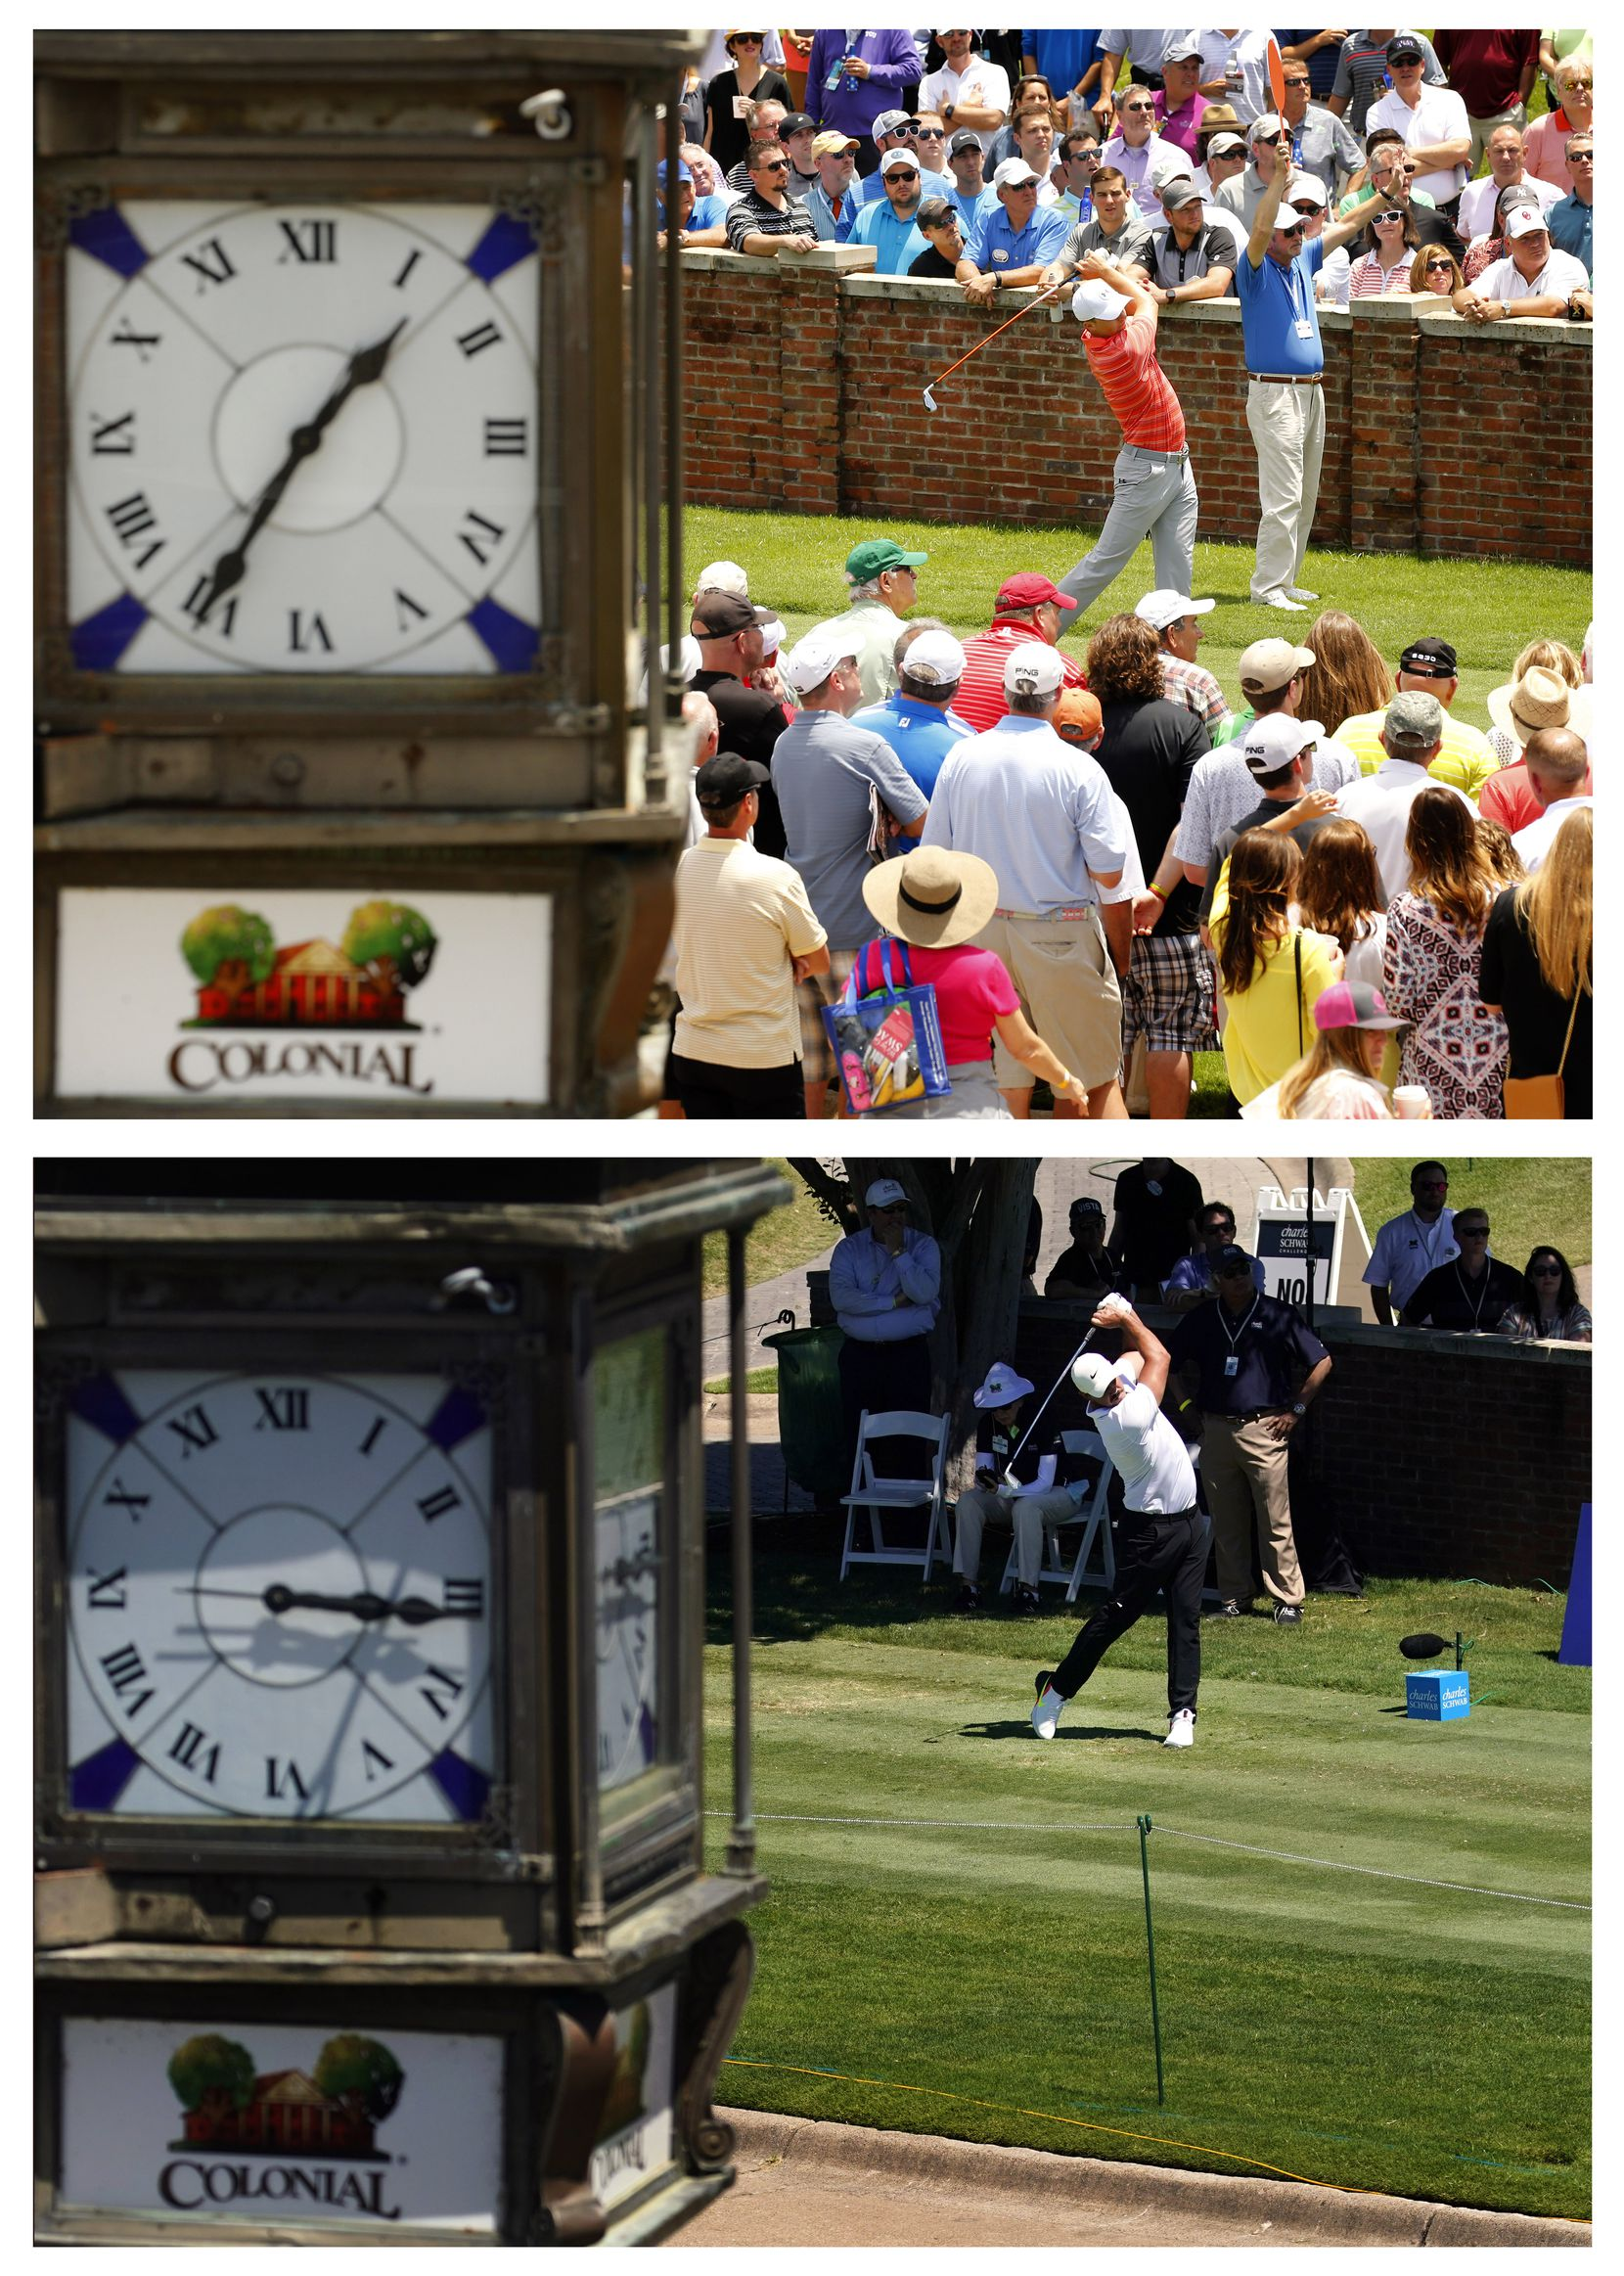 THEN - After a five and a half hour rain delay, the sun came out as golfer Jordan Spieth teed off at 1:35 pm on the 10th tee to start his second round of the Dean and Deluca Invitational at the Colonial Country Club in Fort Worth, Friday, May 27, 2016.  NOW - Without any fans in attendance, PGA Tour golfer Brooks Koepka tees off on No. 10  during the opening round of the Charles Schwab Challenge at the Colonial Country Club in Fort Worth, Thursday, June 11, 2020.